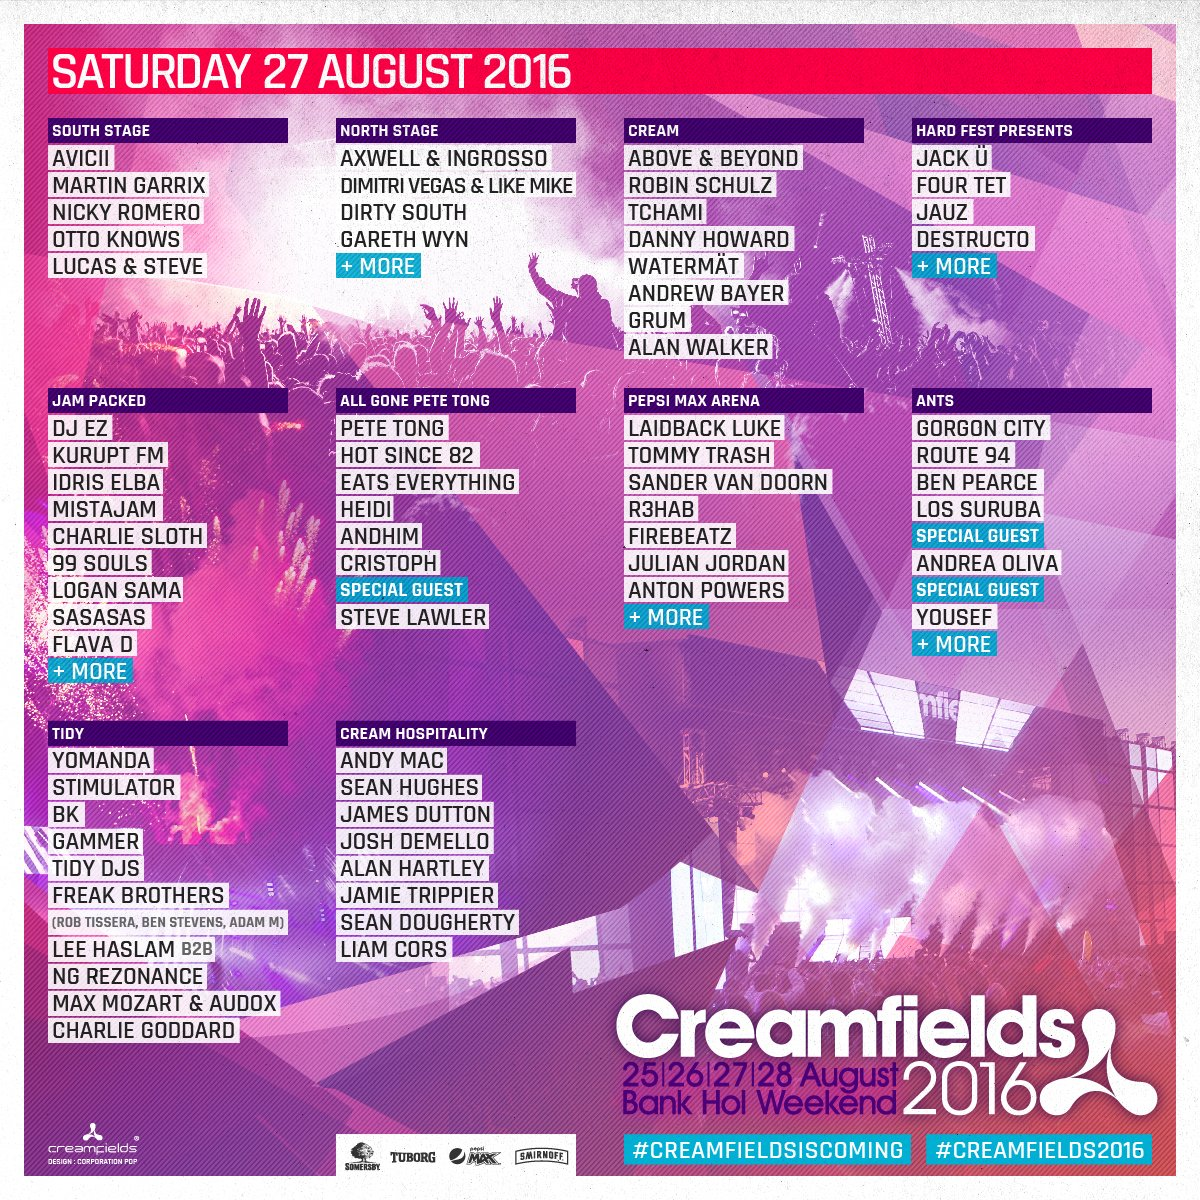 Drum Roll please...#Creamfields2016 line up has landed. #Creamfieldsiscoming https://t.co/Rk7F7miskk https://t.co/kdvgiOUUOT